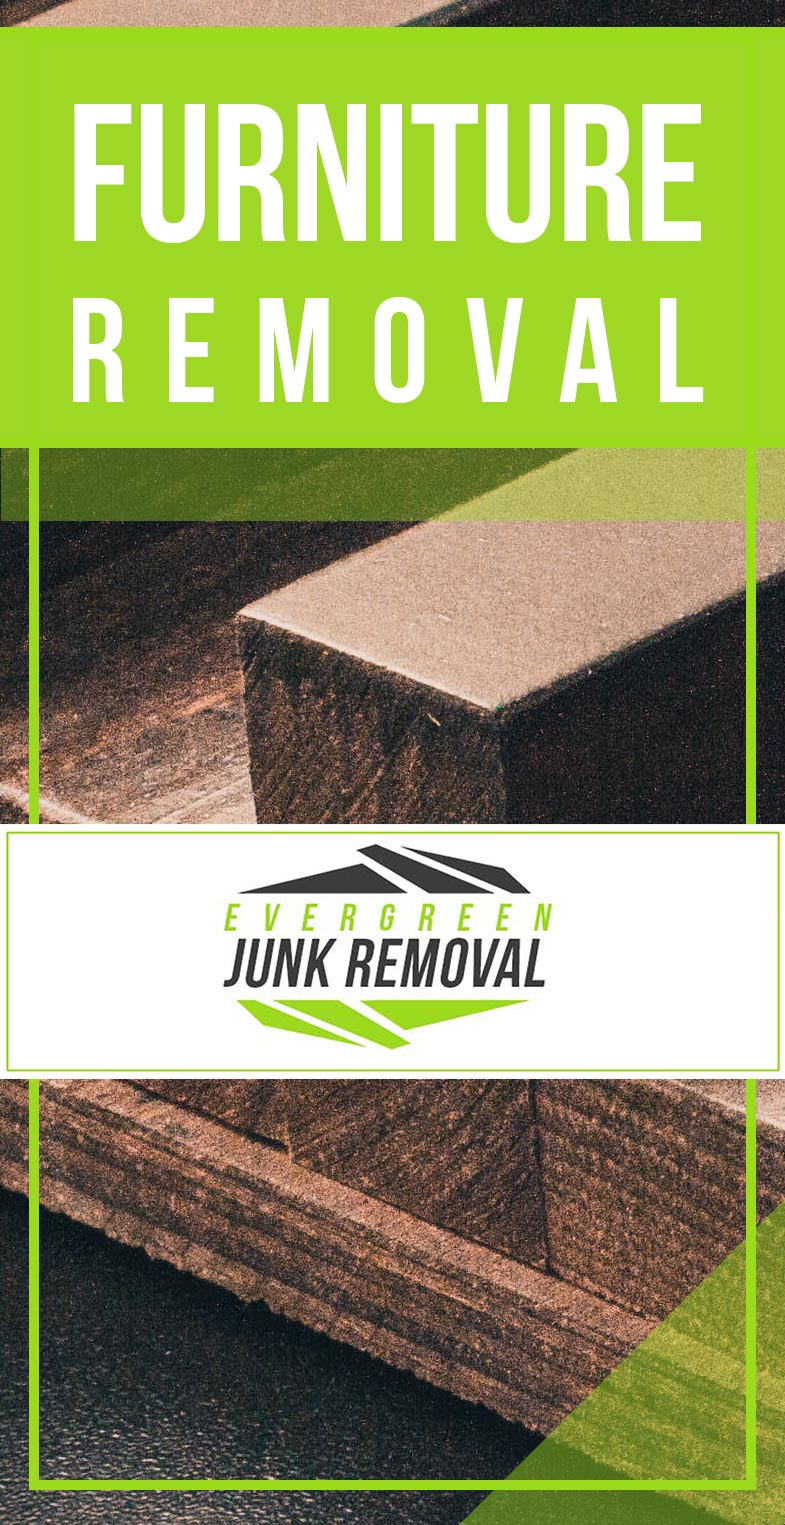 Lake-Mary-Furniture-Removal